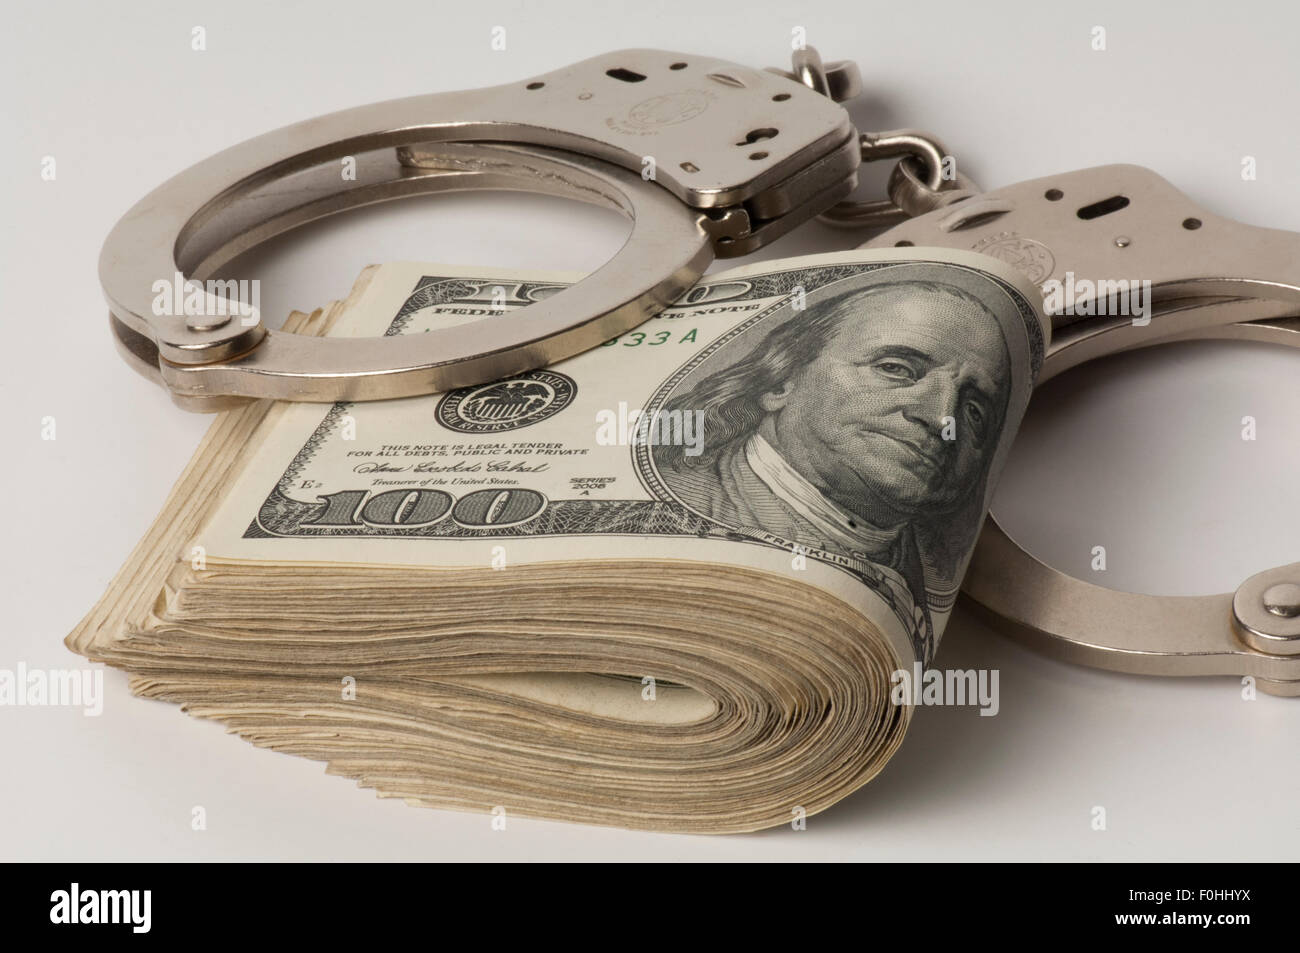 handcuffs on wad of United States $100 dollar bills - Stock Image